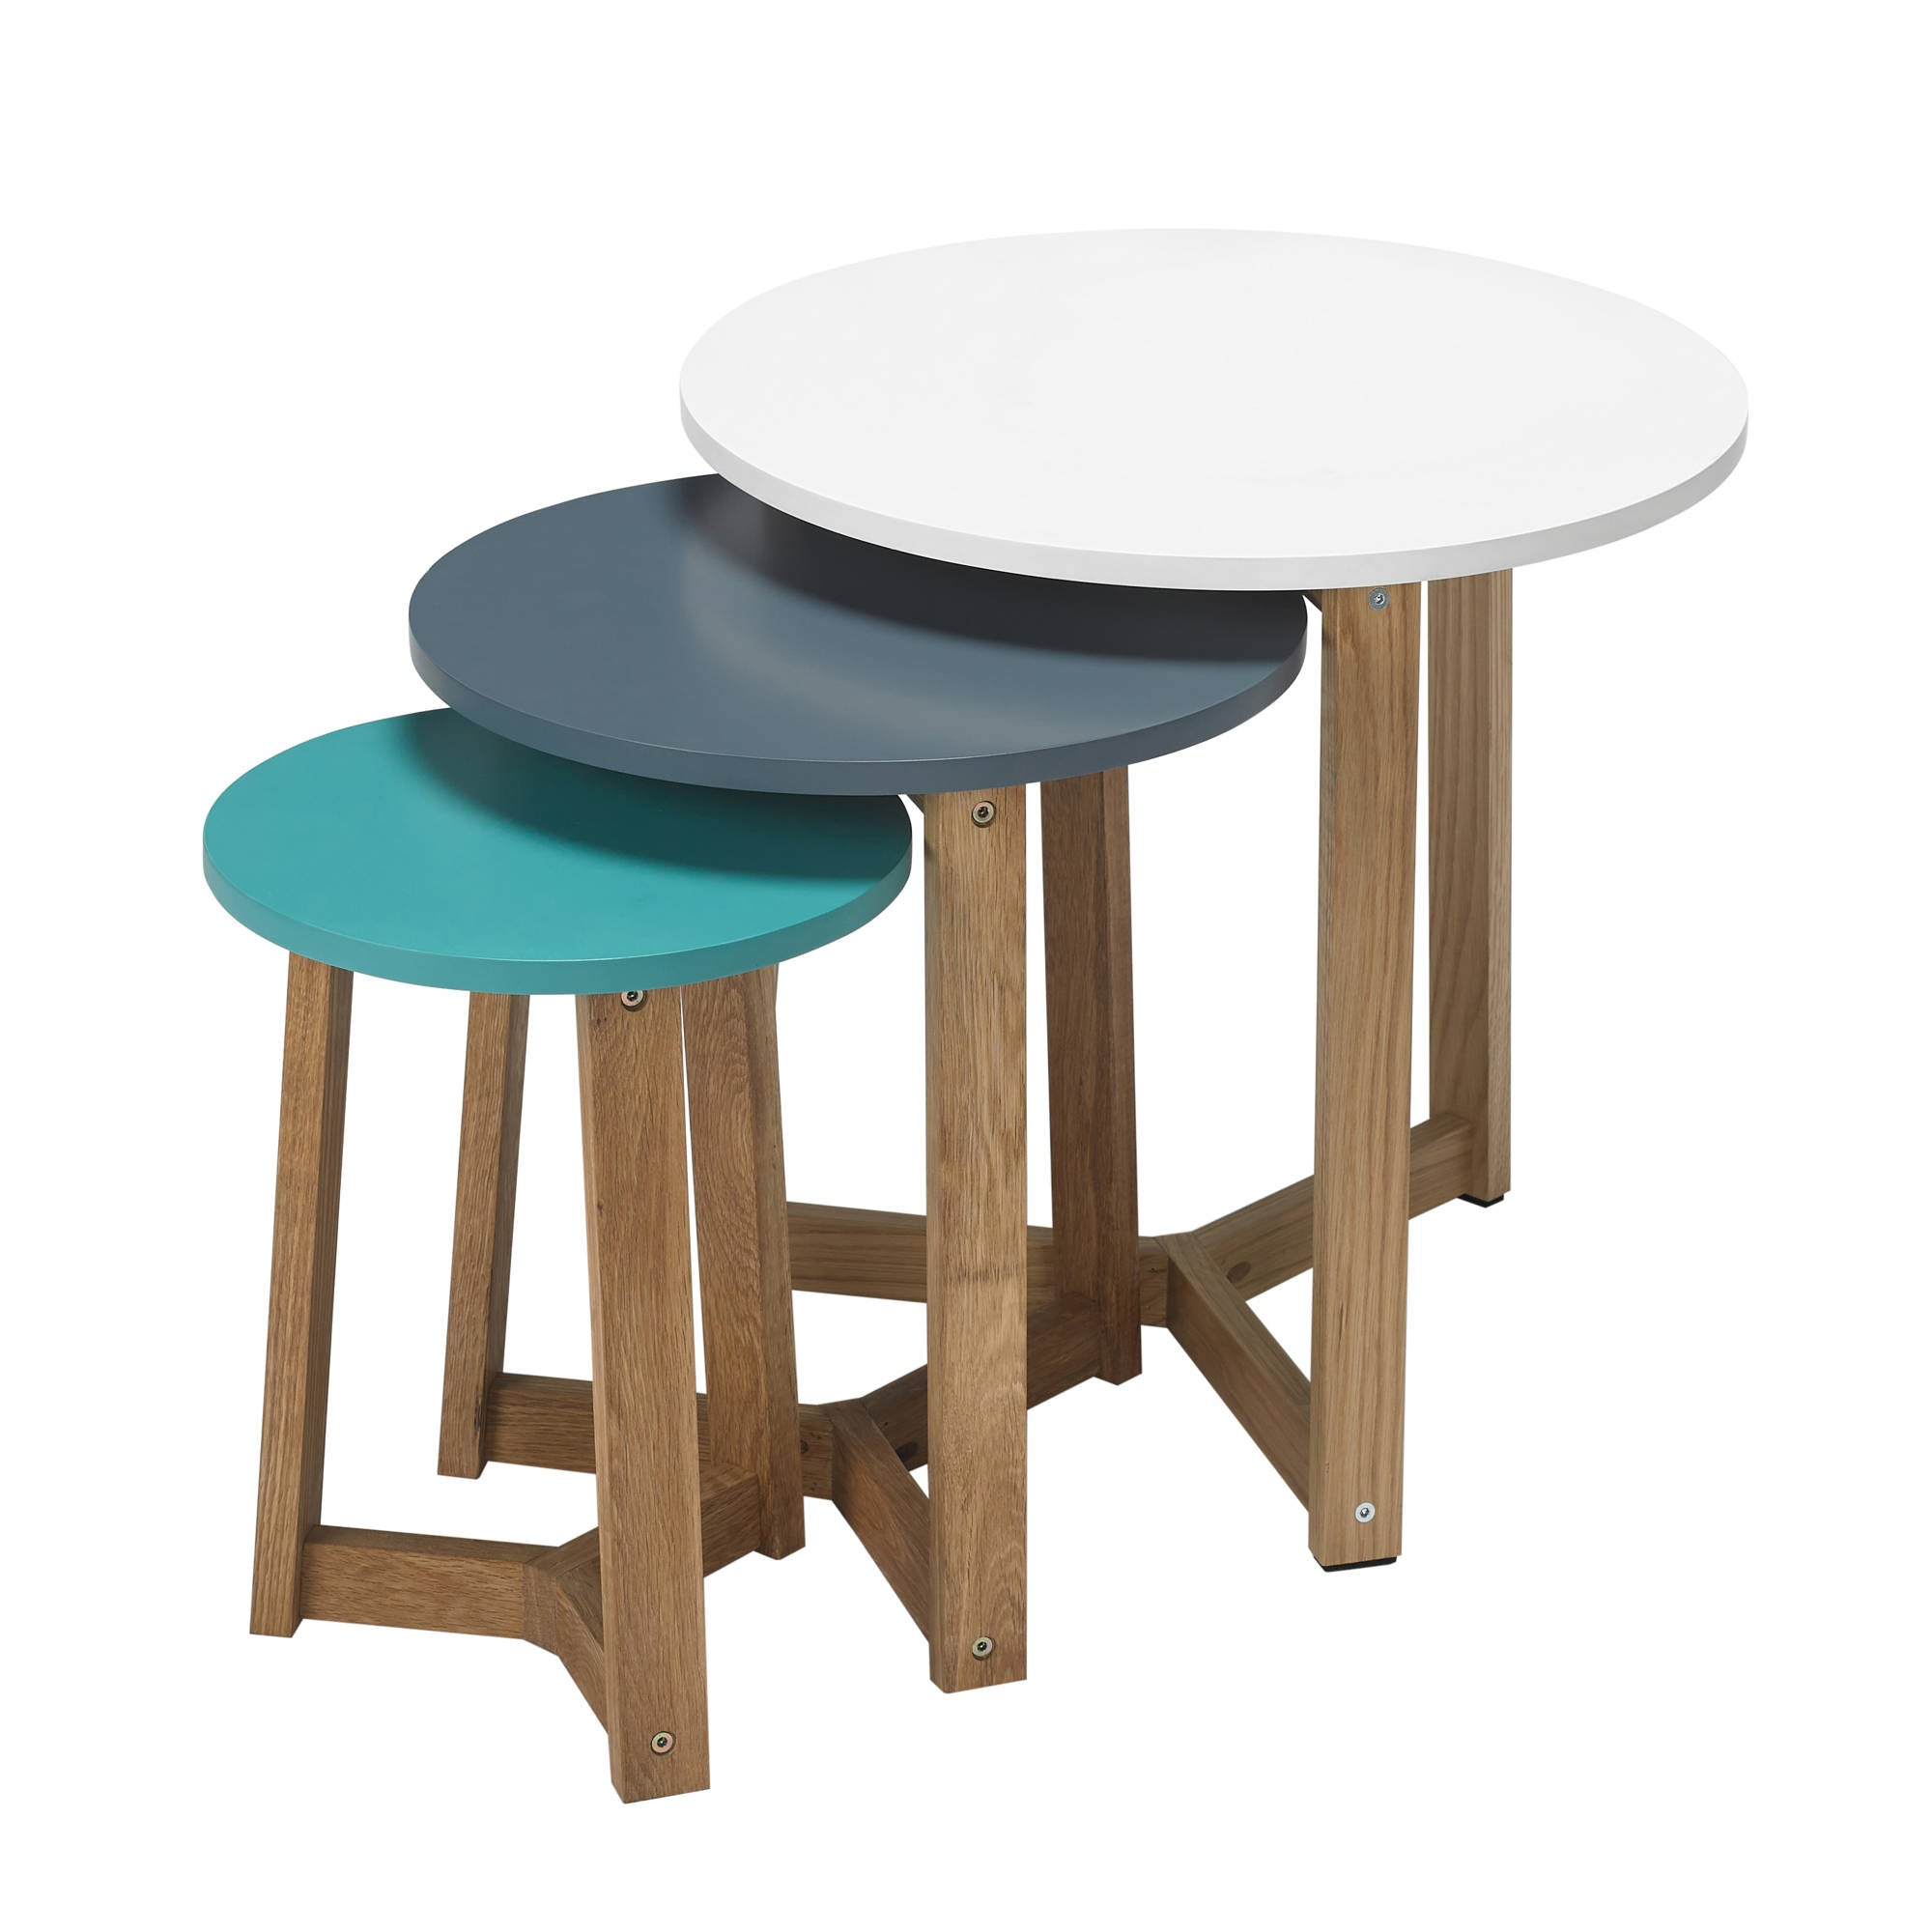 Withdean Nest of Tables